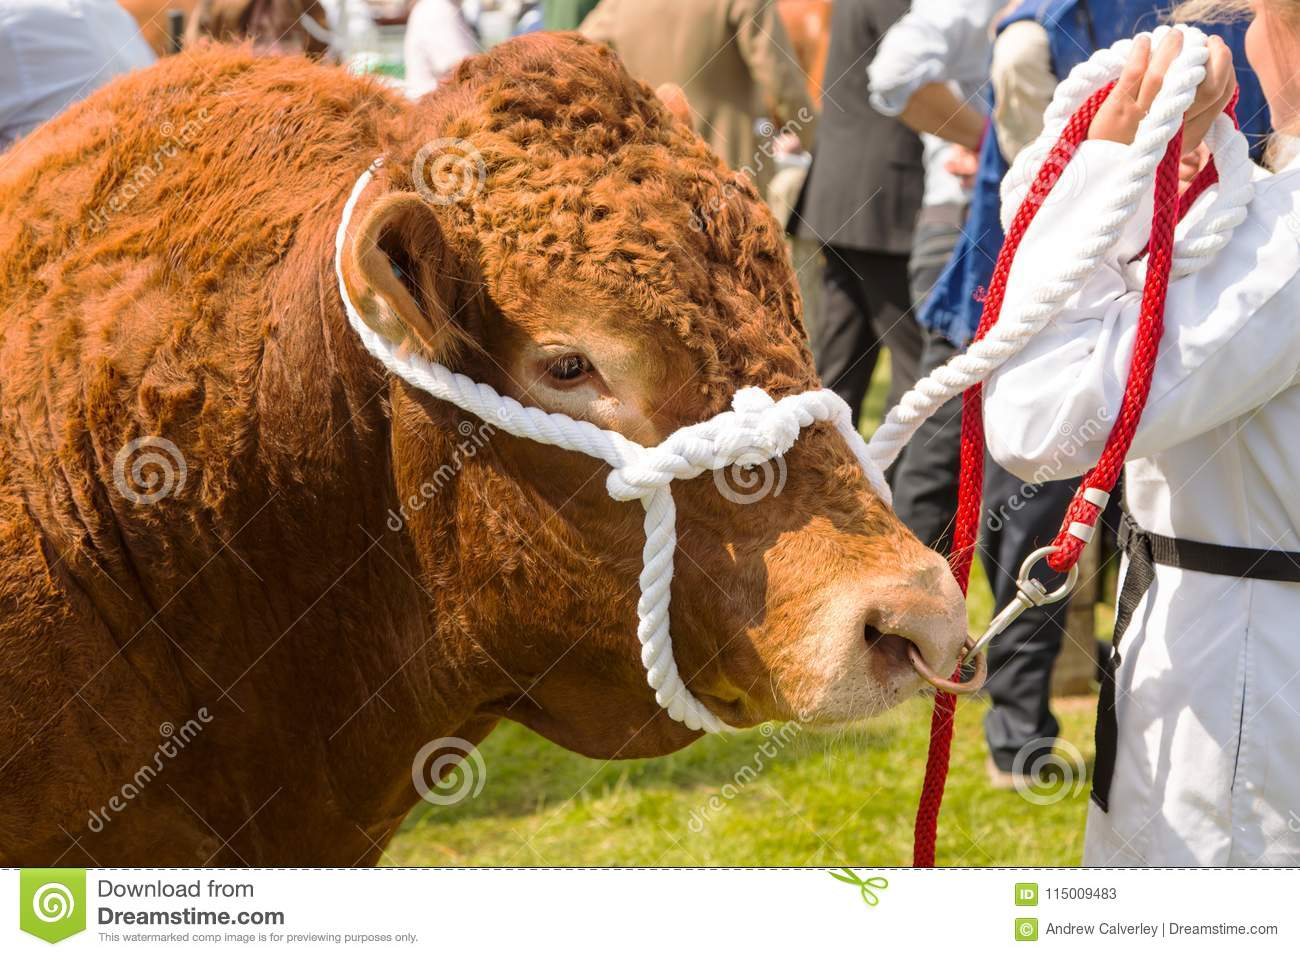 A South Devon bull at a show